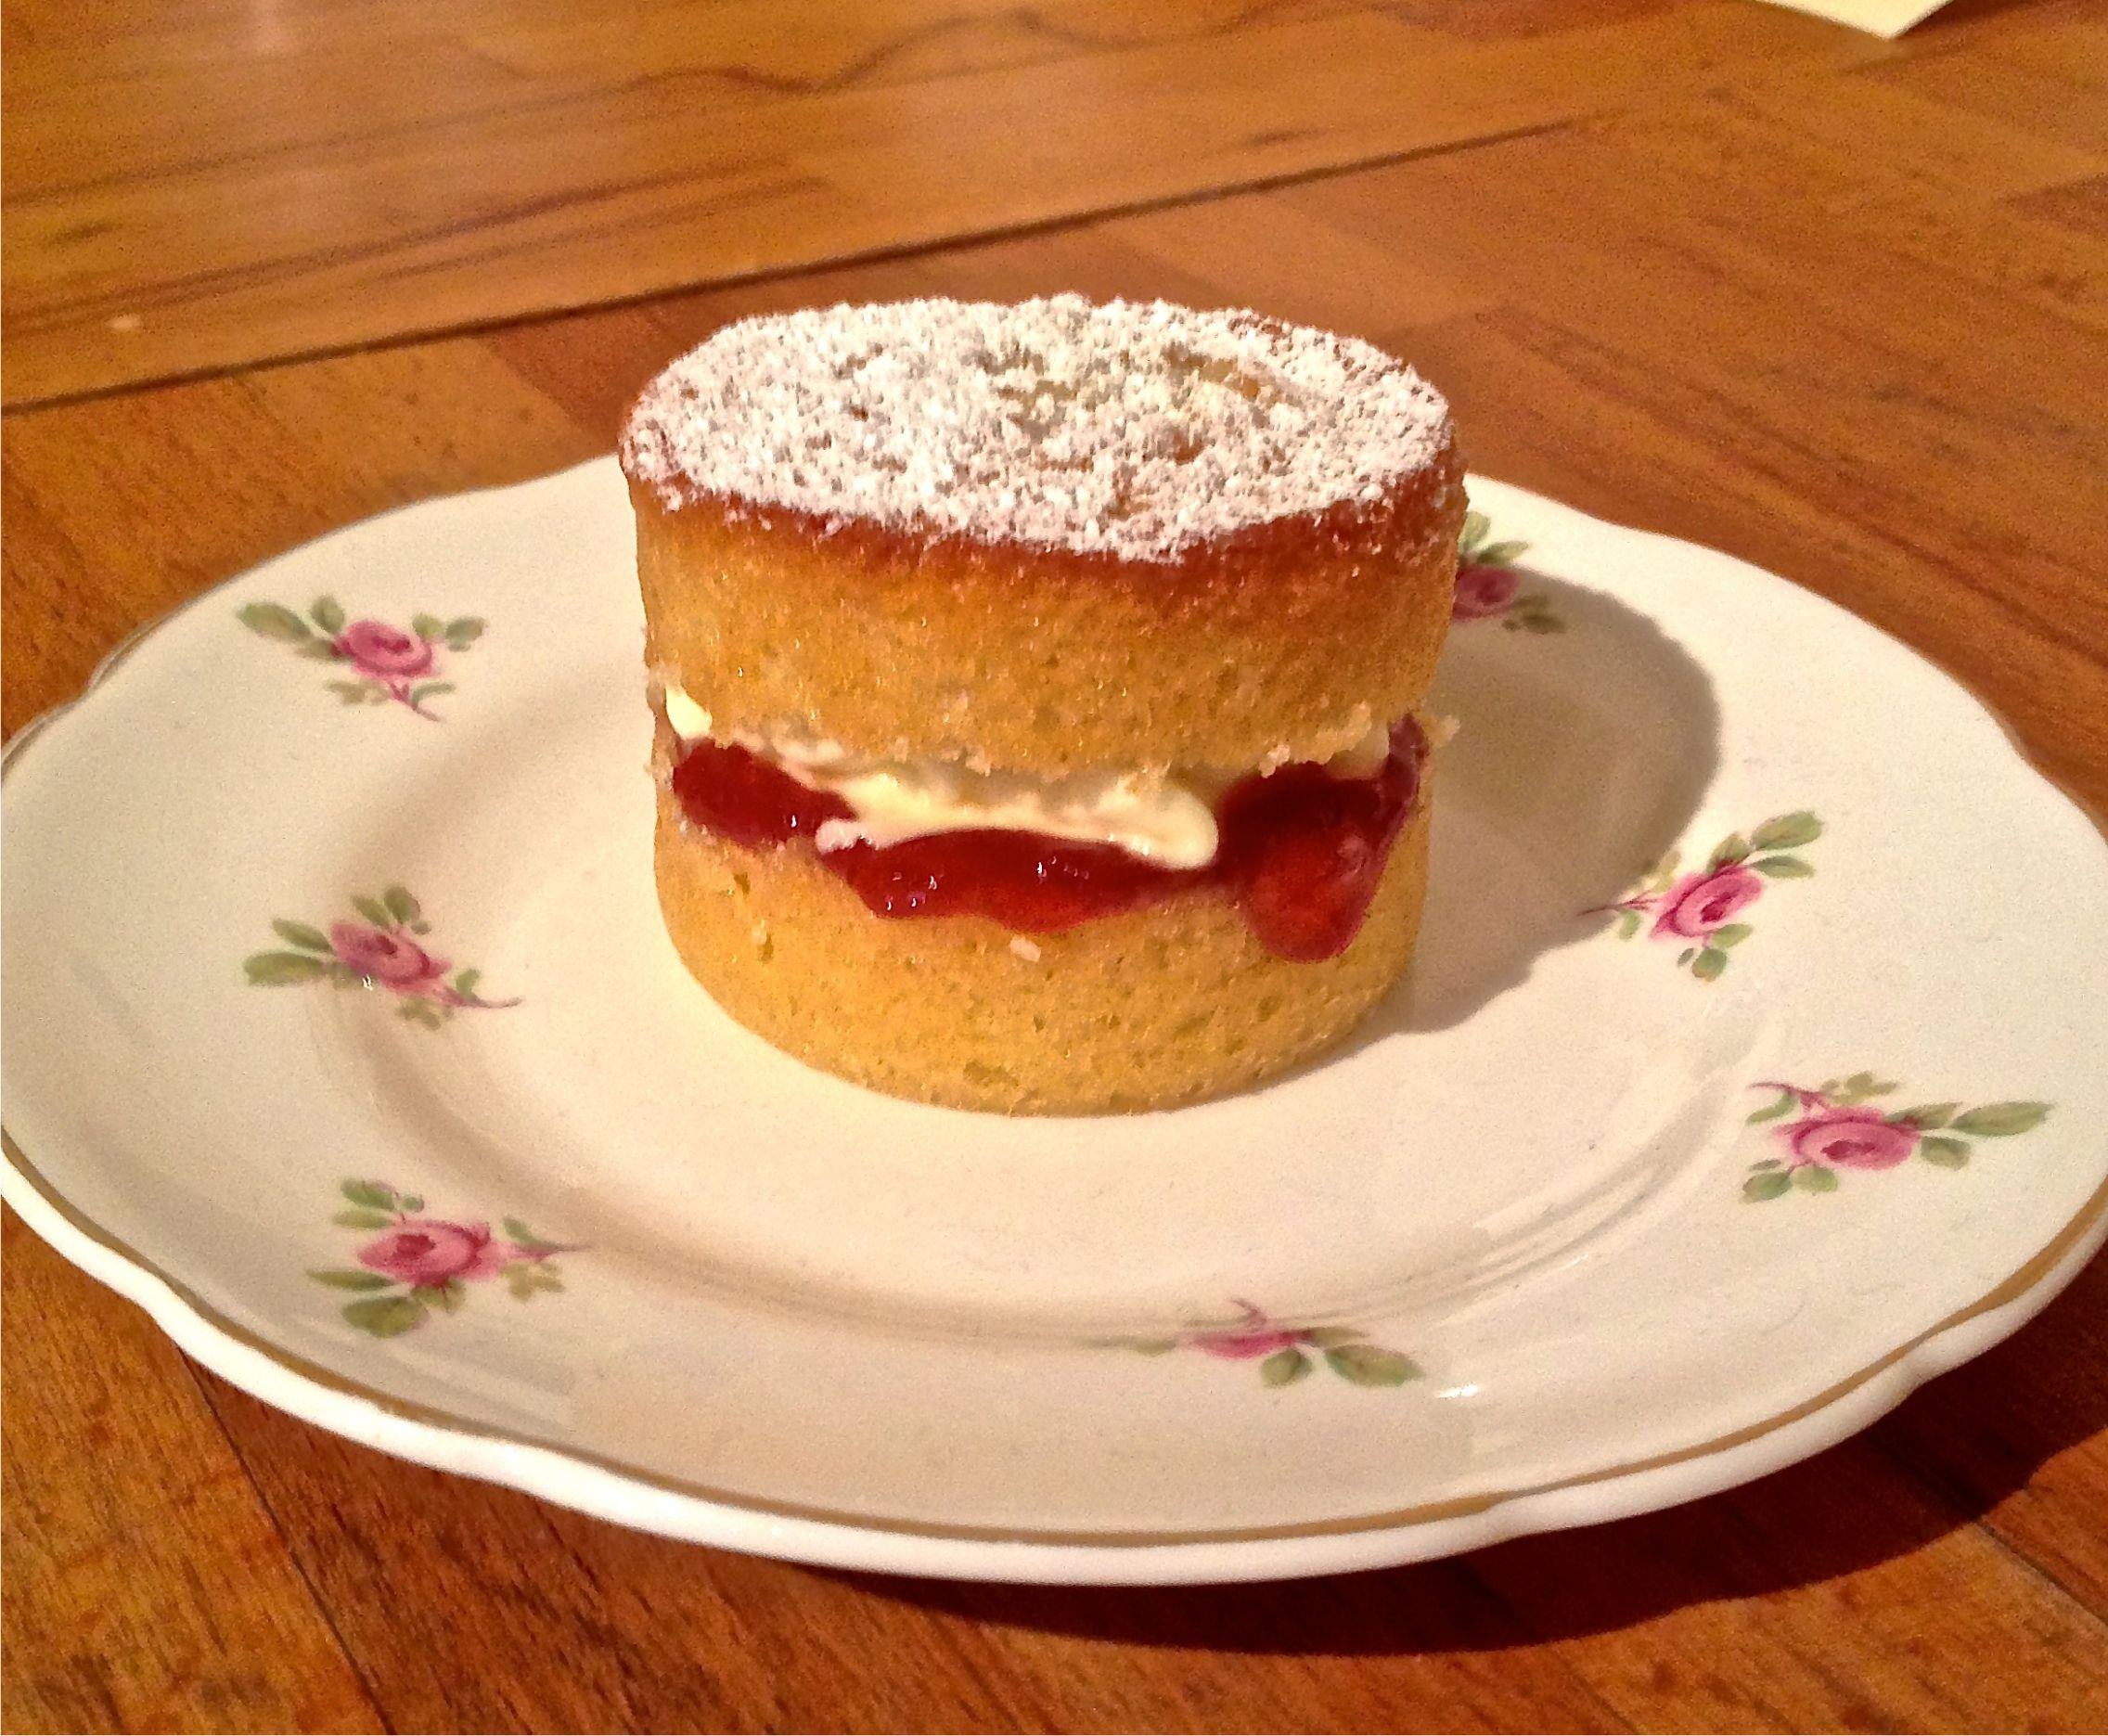 Xylitol – A spoonful of yummy! - Dessert Recipes Using Xylitol